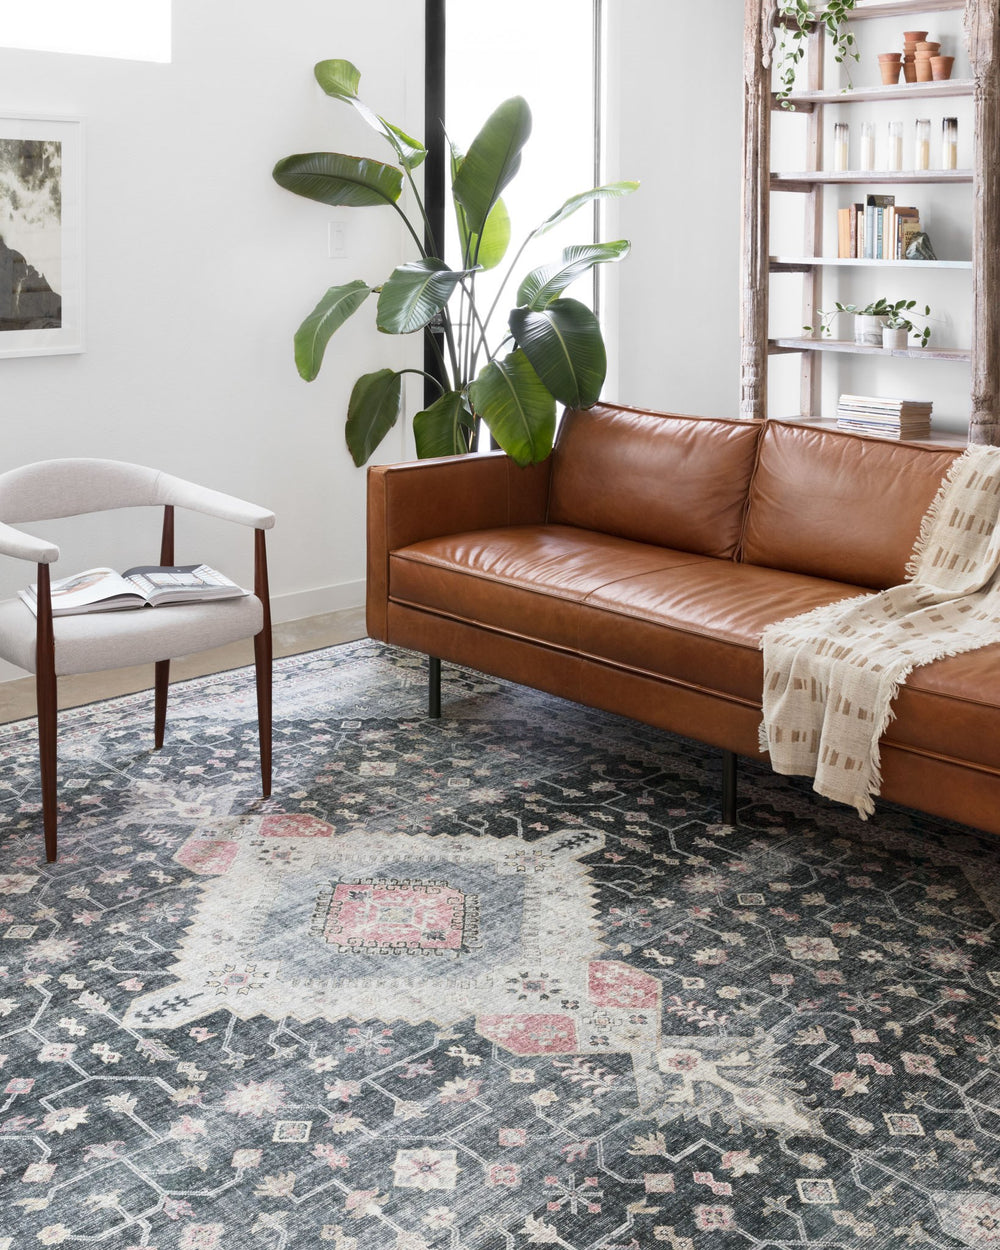 The Skye Collection is timeless and classic with a beautiful, old-world design in a variety of color choices. Power-loomed in China of 100% polyester, these printed designs provide the textured effect of high-end rugs at an affordable price.  Power Loomed 100% Polyester SKY-02 Charcoal/Multi